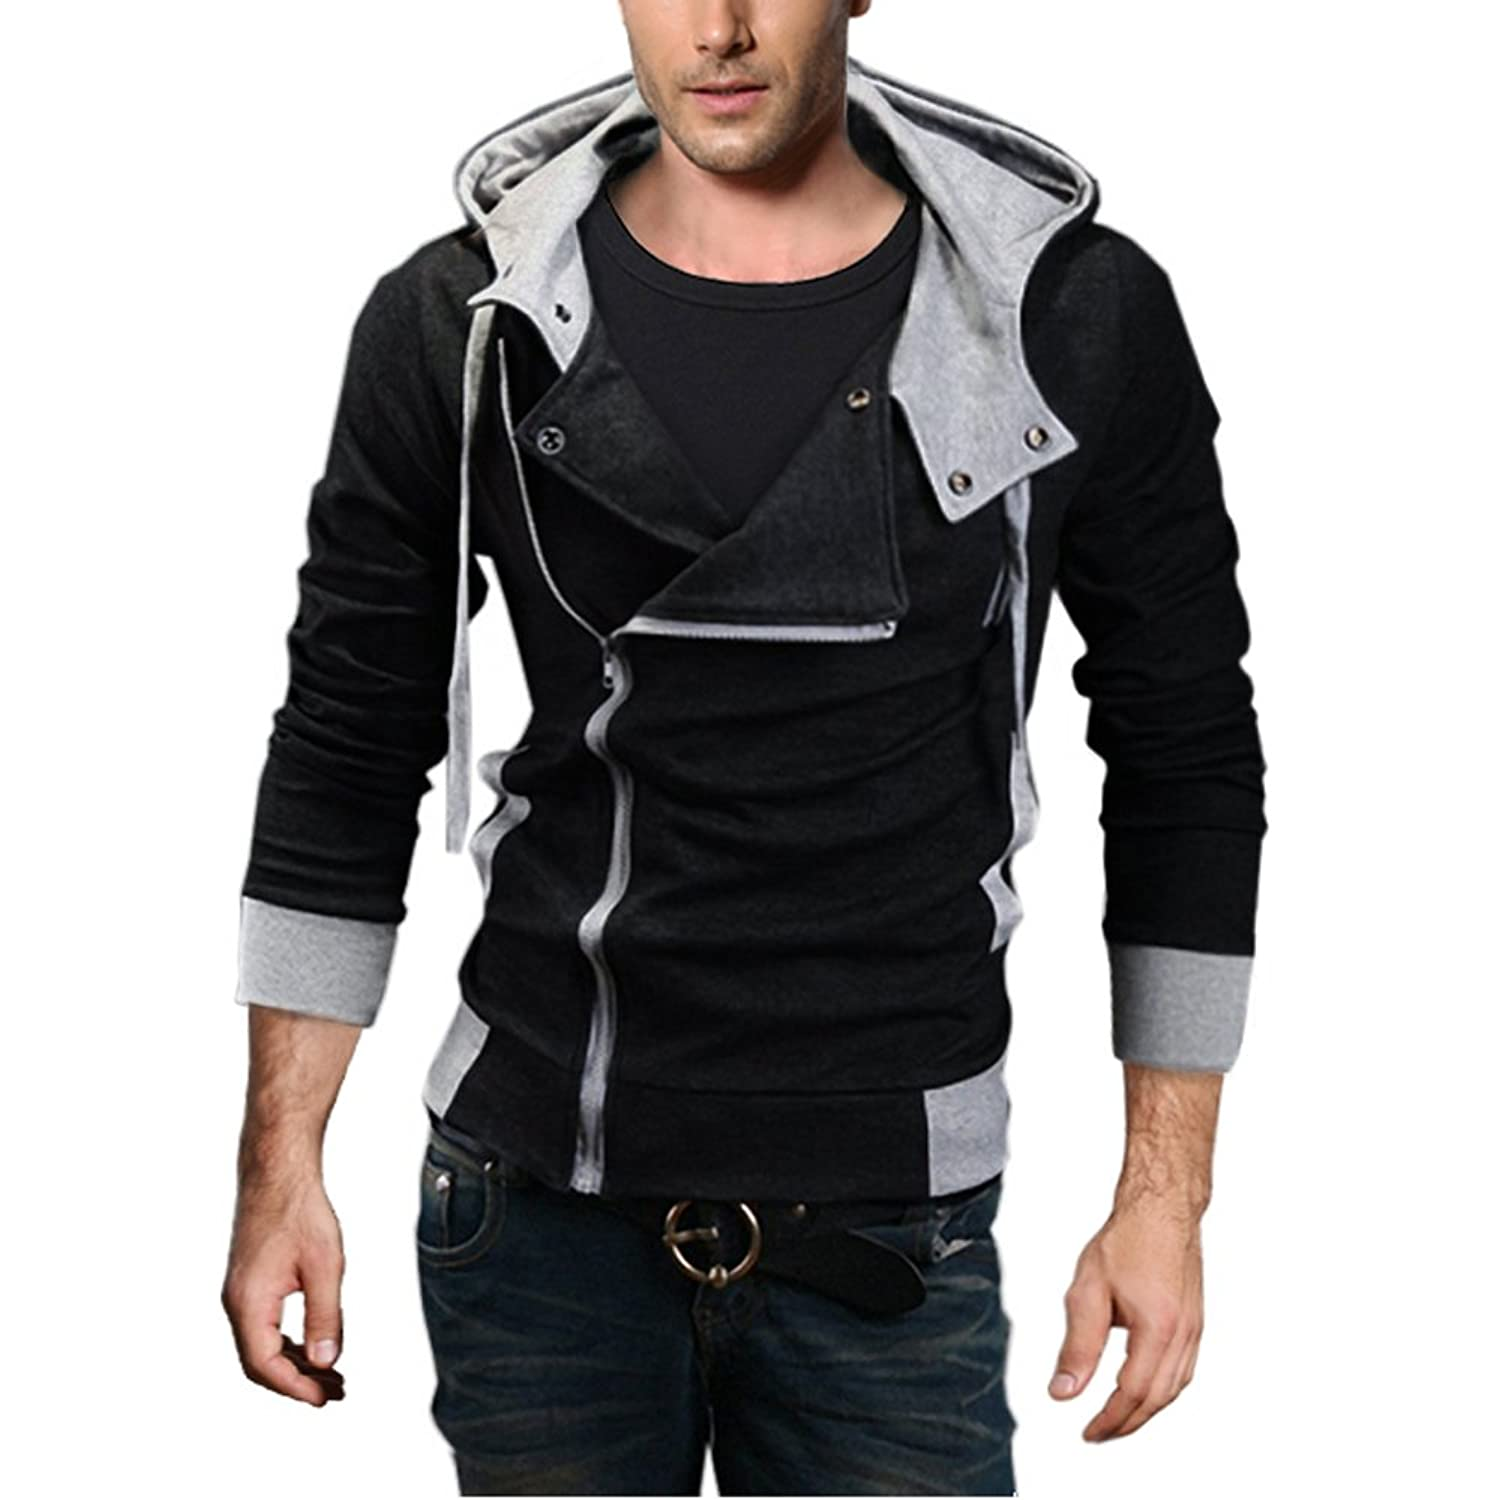 DJT Men's Oblique Zipper Hoodie Casual Top Coat Slim Fit Jacket at ...